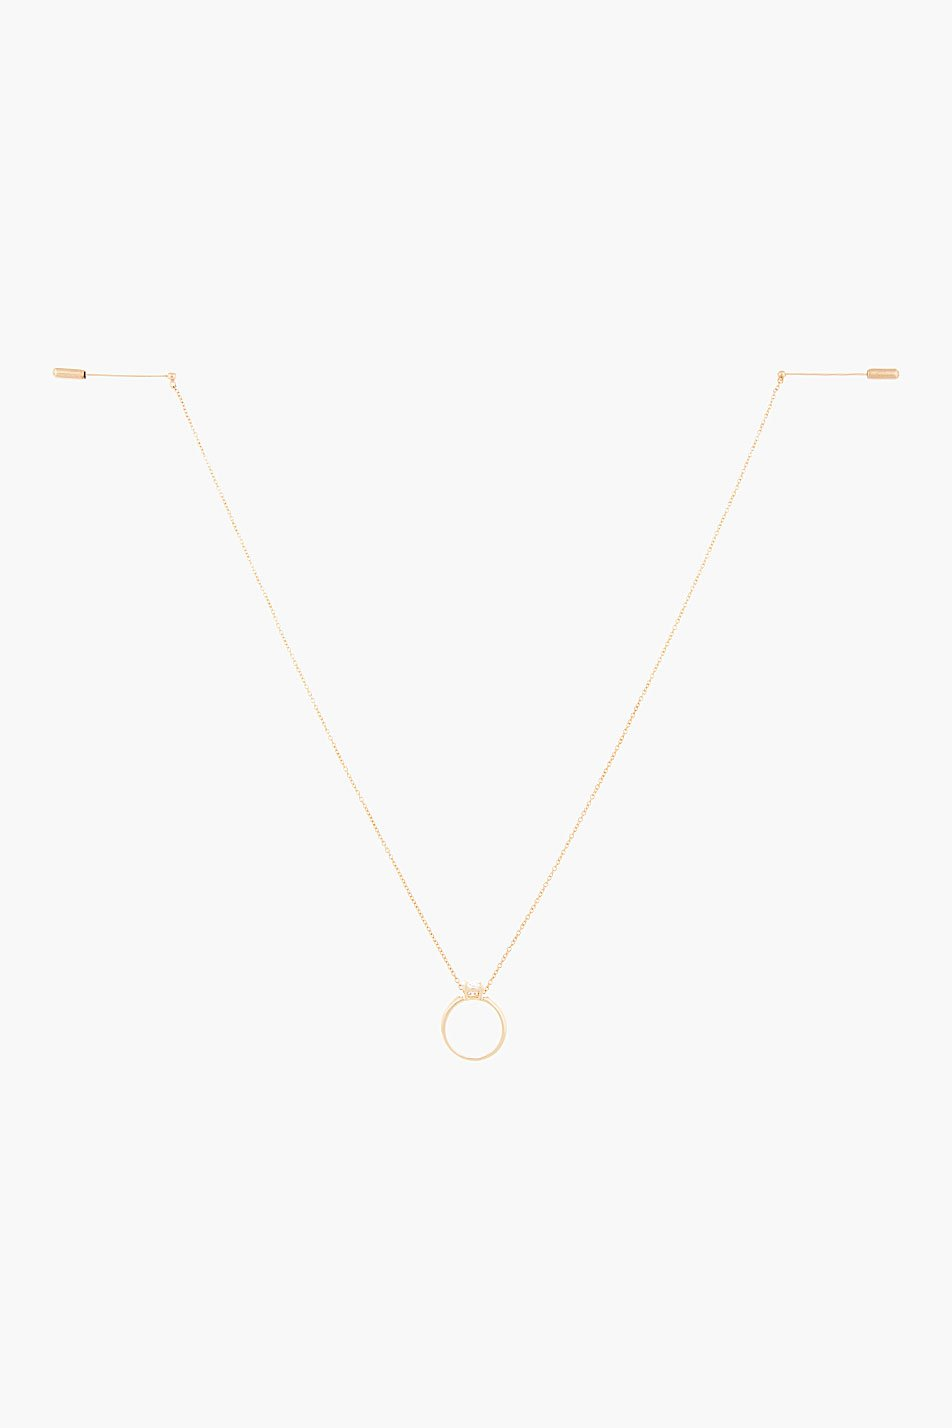 Maison martin margiela gold chain and engagement ring pin